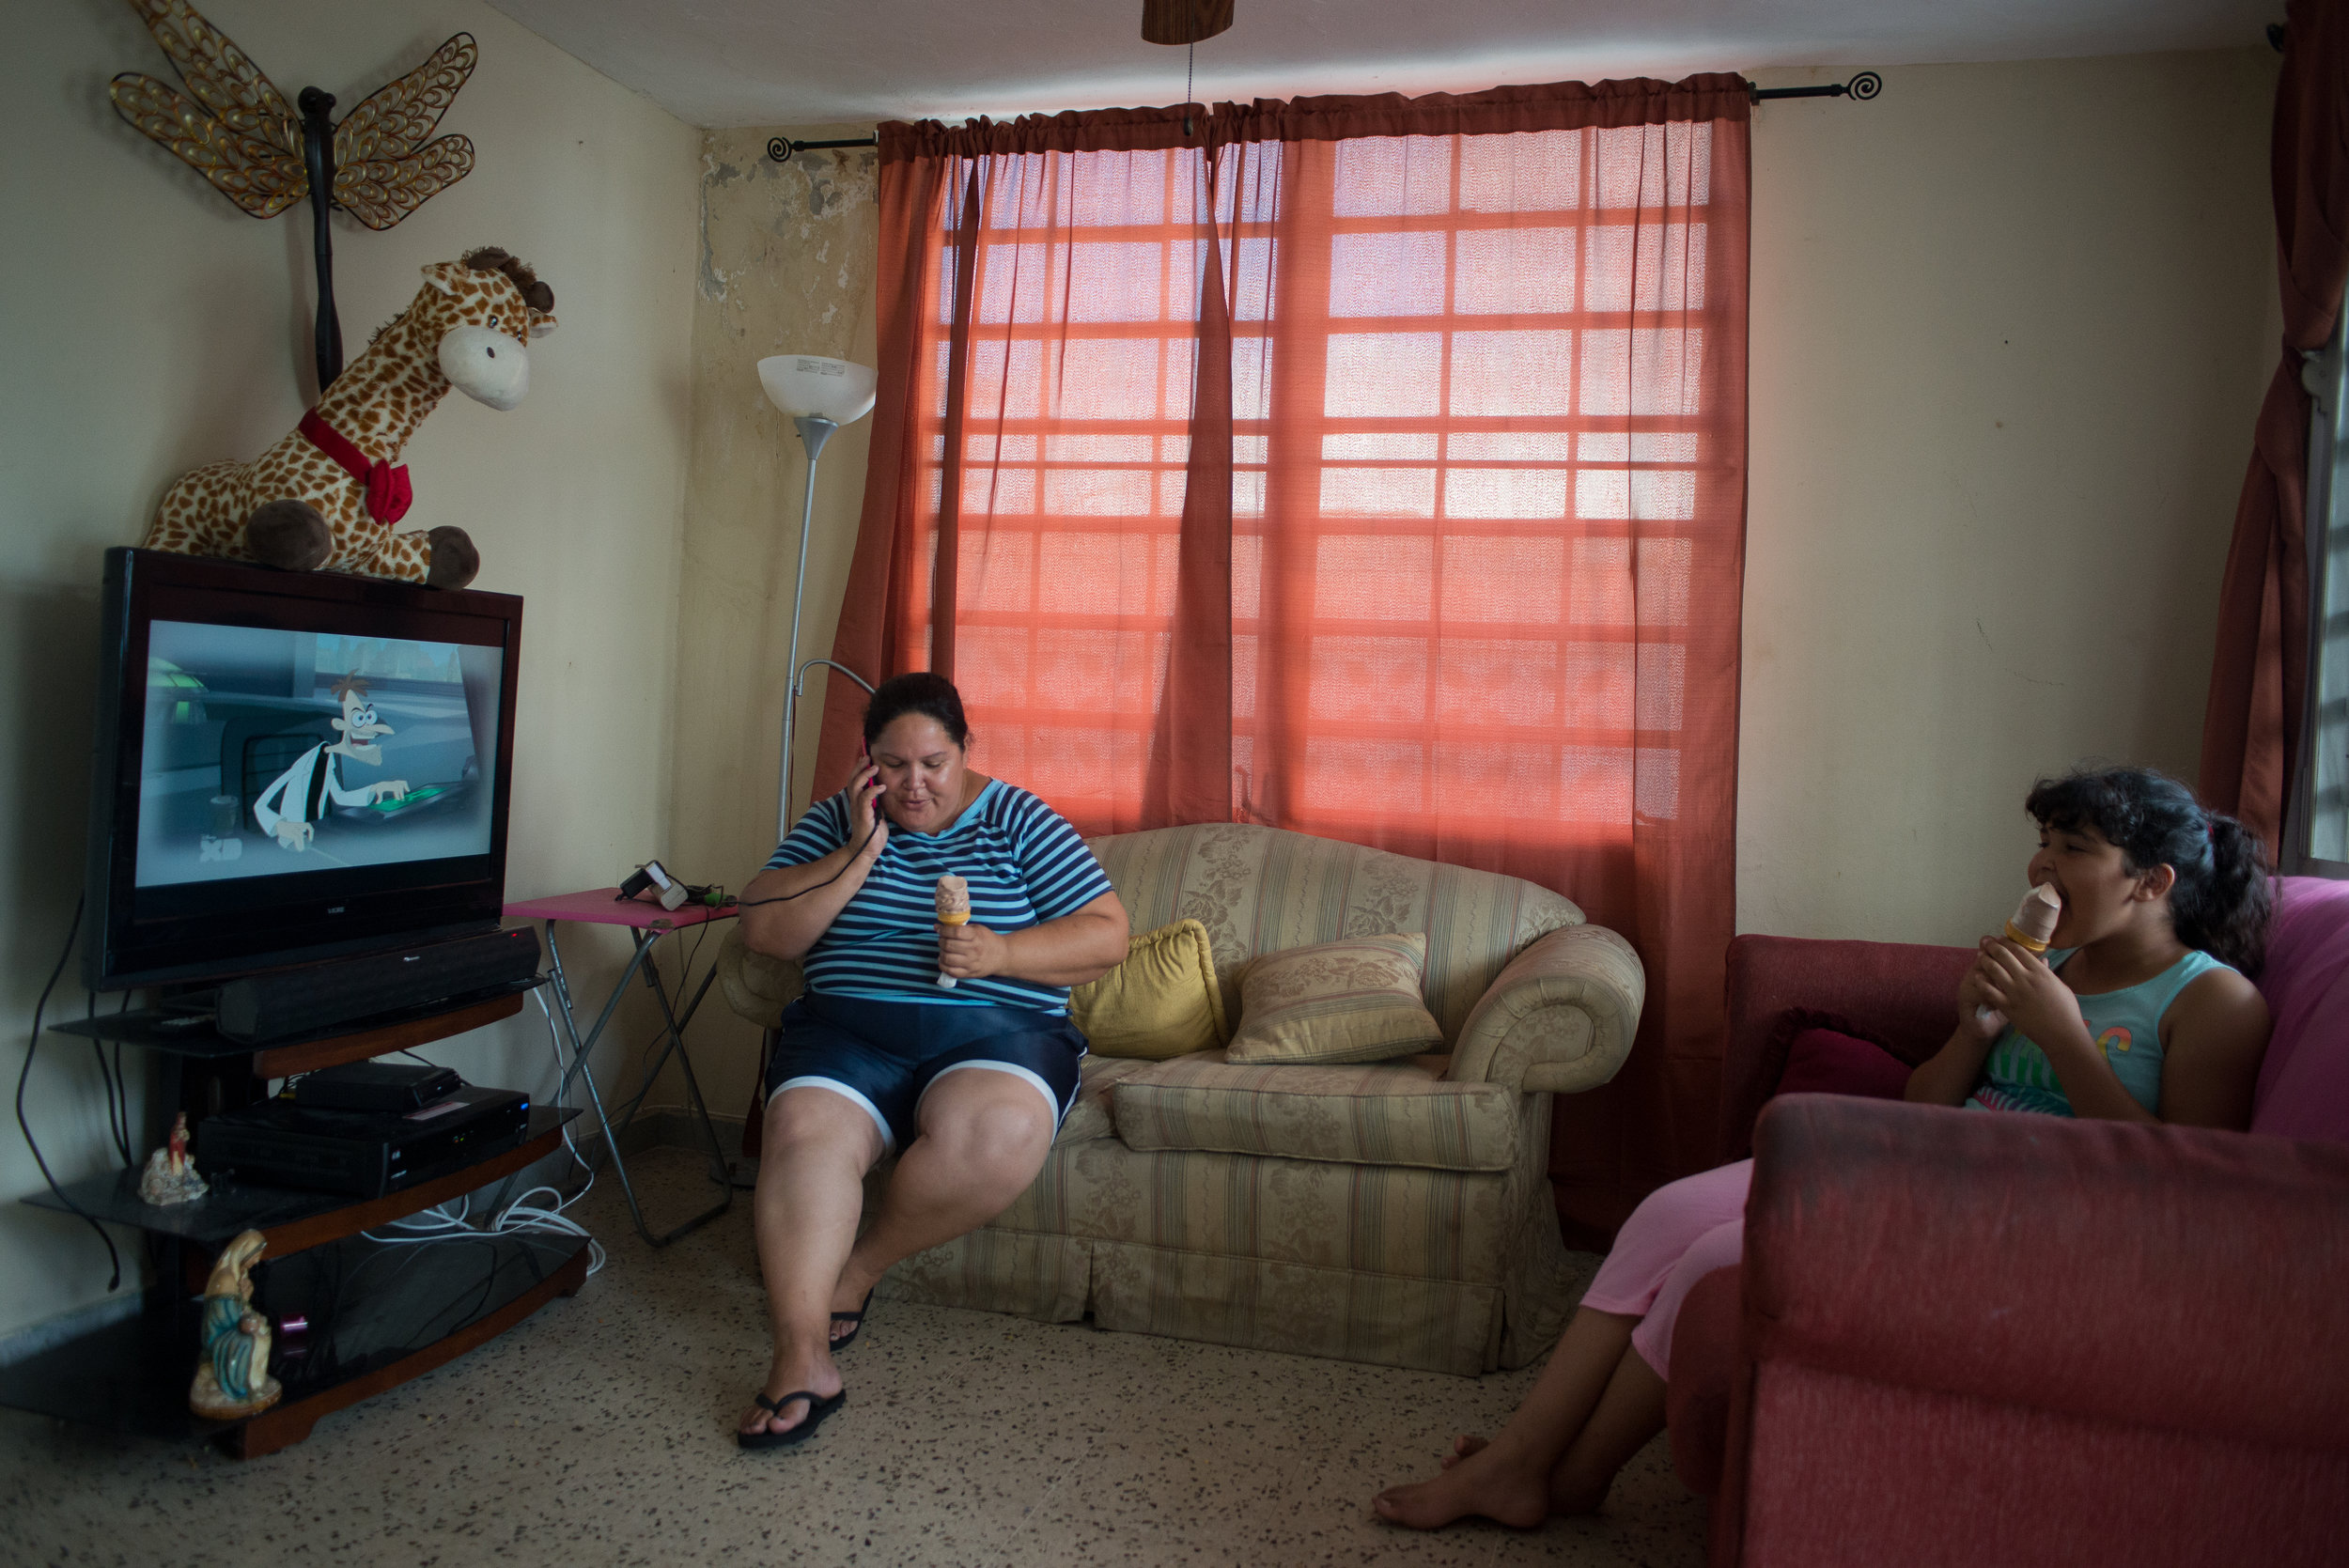 6/9/18 – Bayamón, Puerto Rico – Crystal is a student in the fourth grade at Aurelio Perez Martinez, one of the schools set to close before the Fall. They live on the same block as her current school, and will have to commute in a school bus that arrives early in the morning to pick up the kids if they are relocated to a new school because the family does not own a car. She sits at home one Saturday afternoon with her mother, Nancy Rodriguez, an active community member of Aurelio.